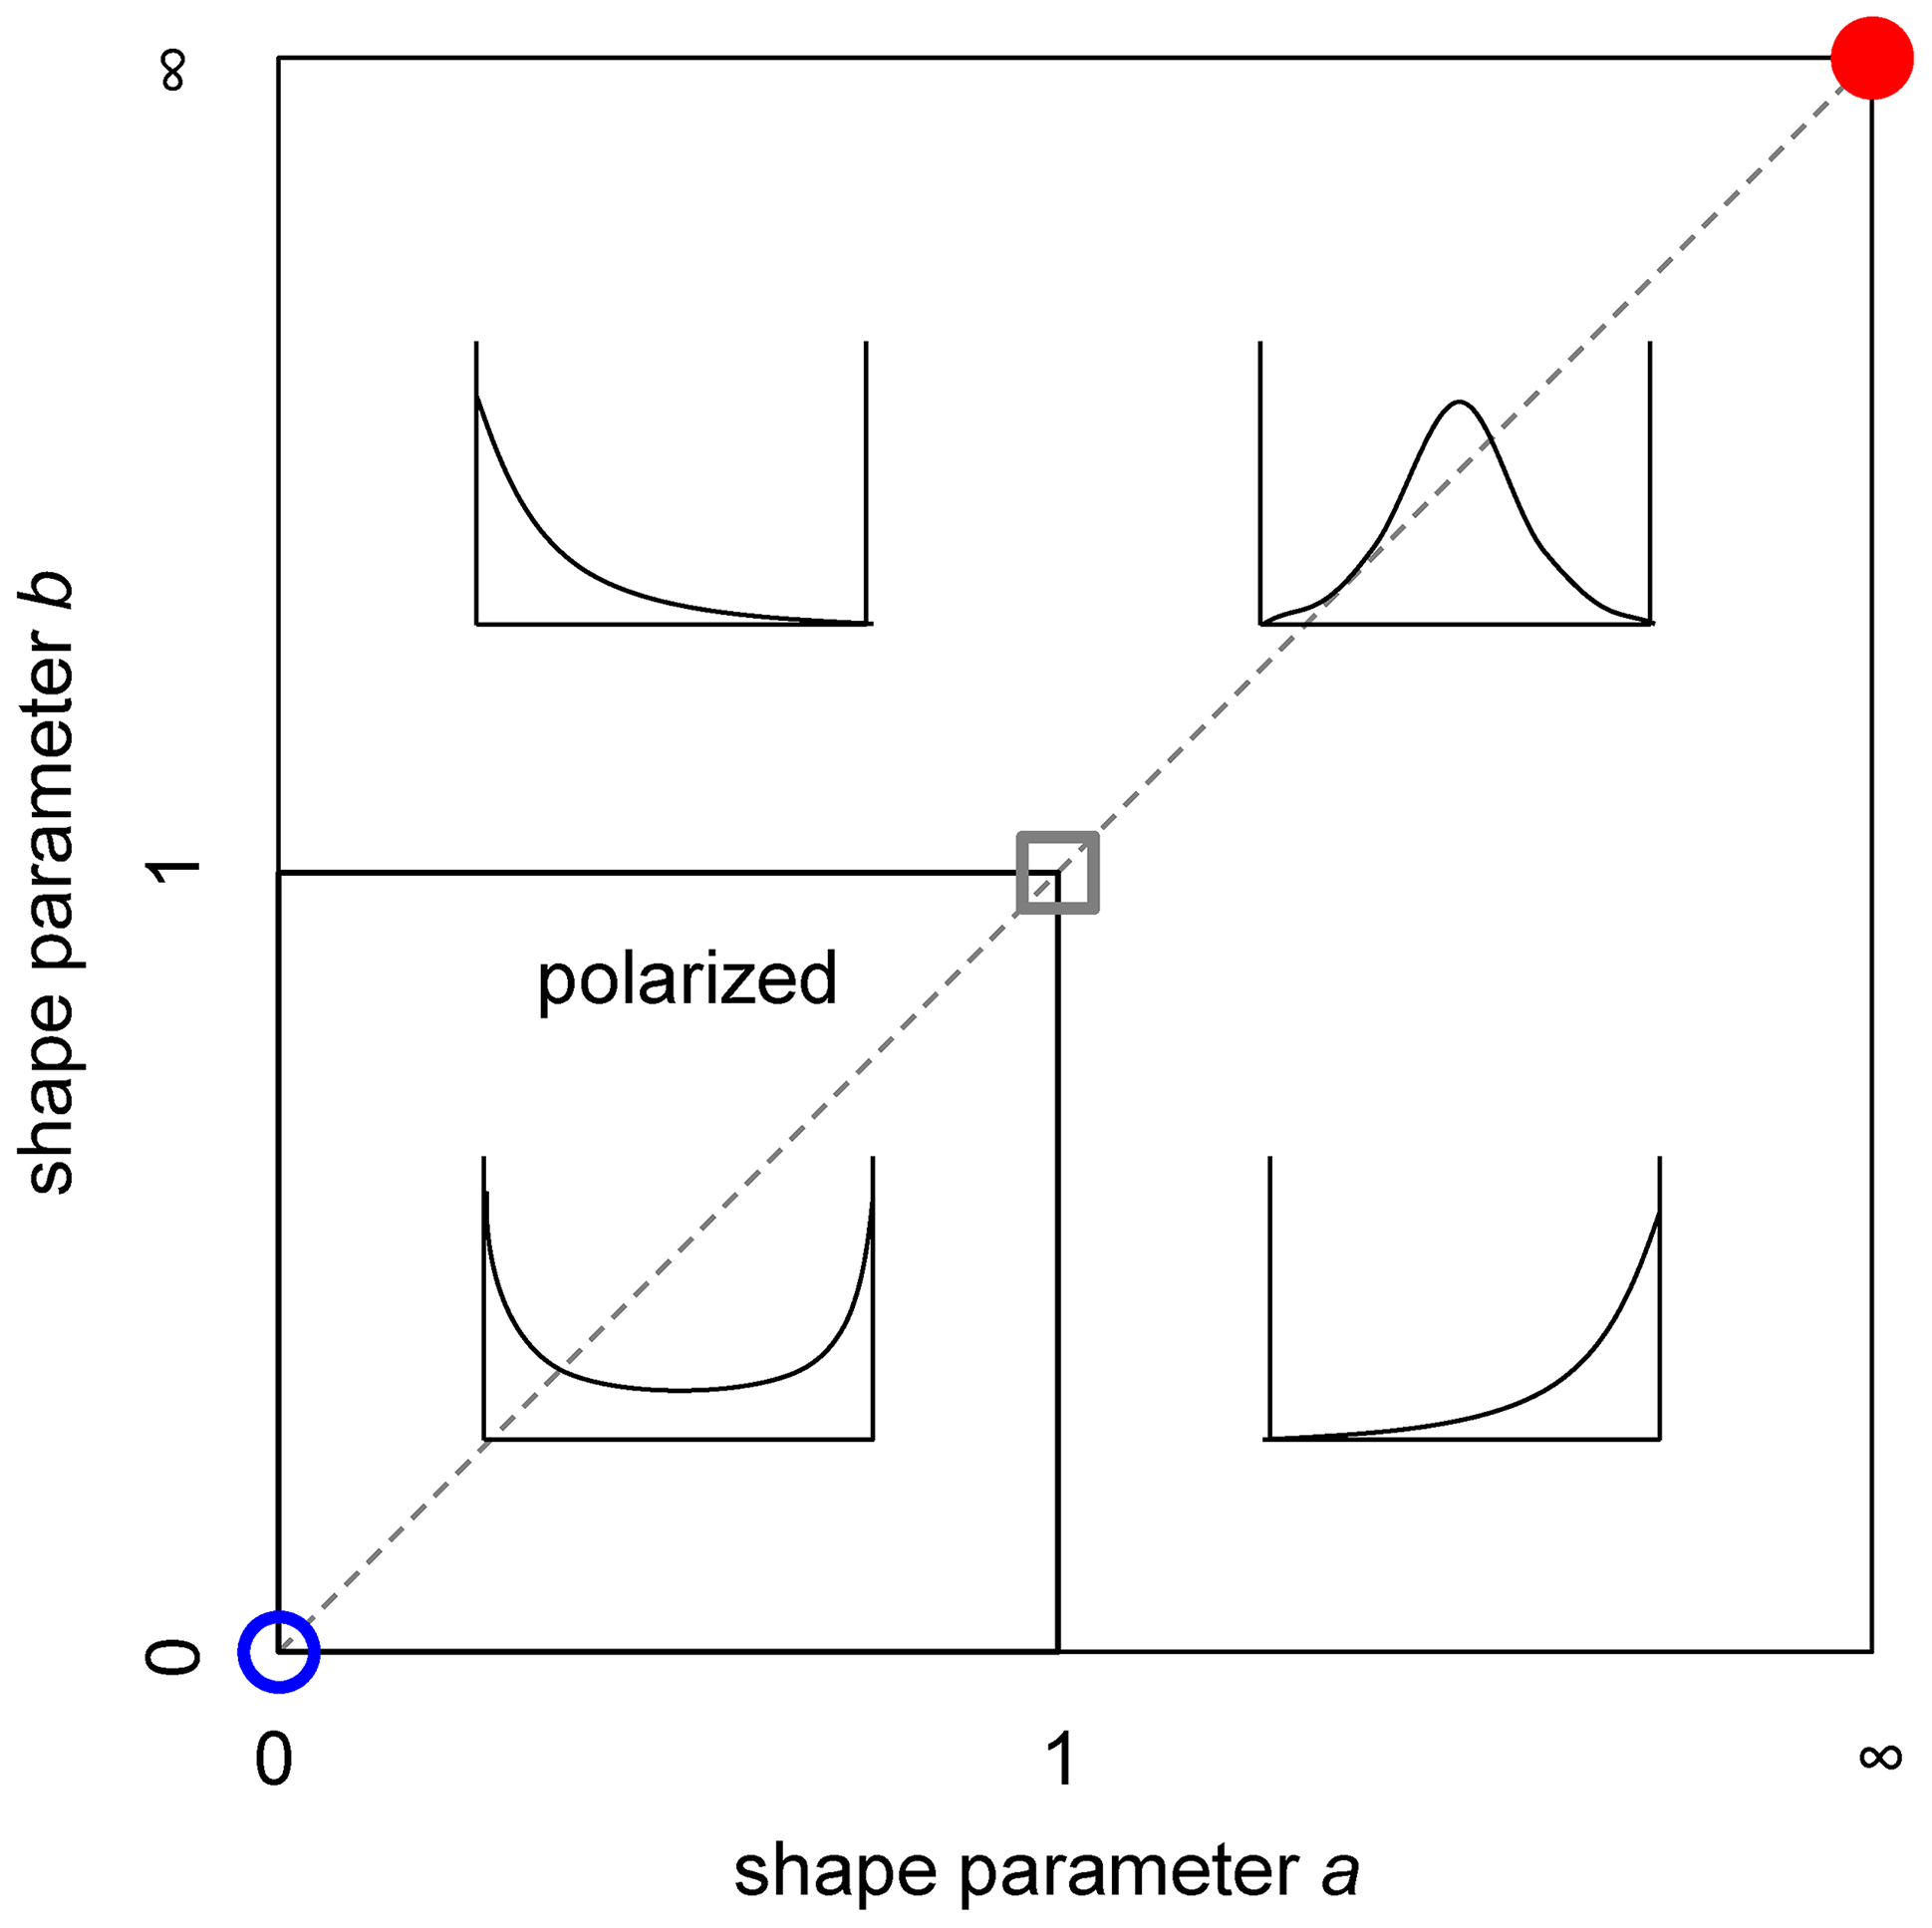 Shape classification in the terms of parameters <i>a</i> and <i>b</i>.